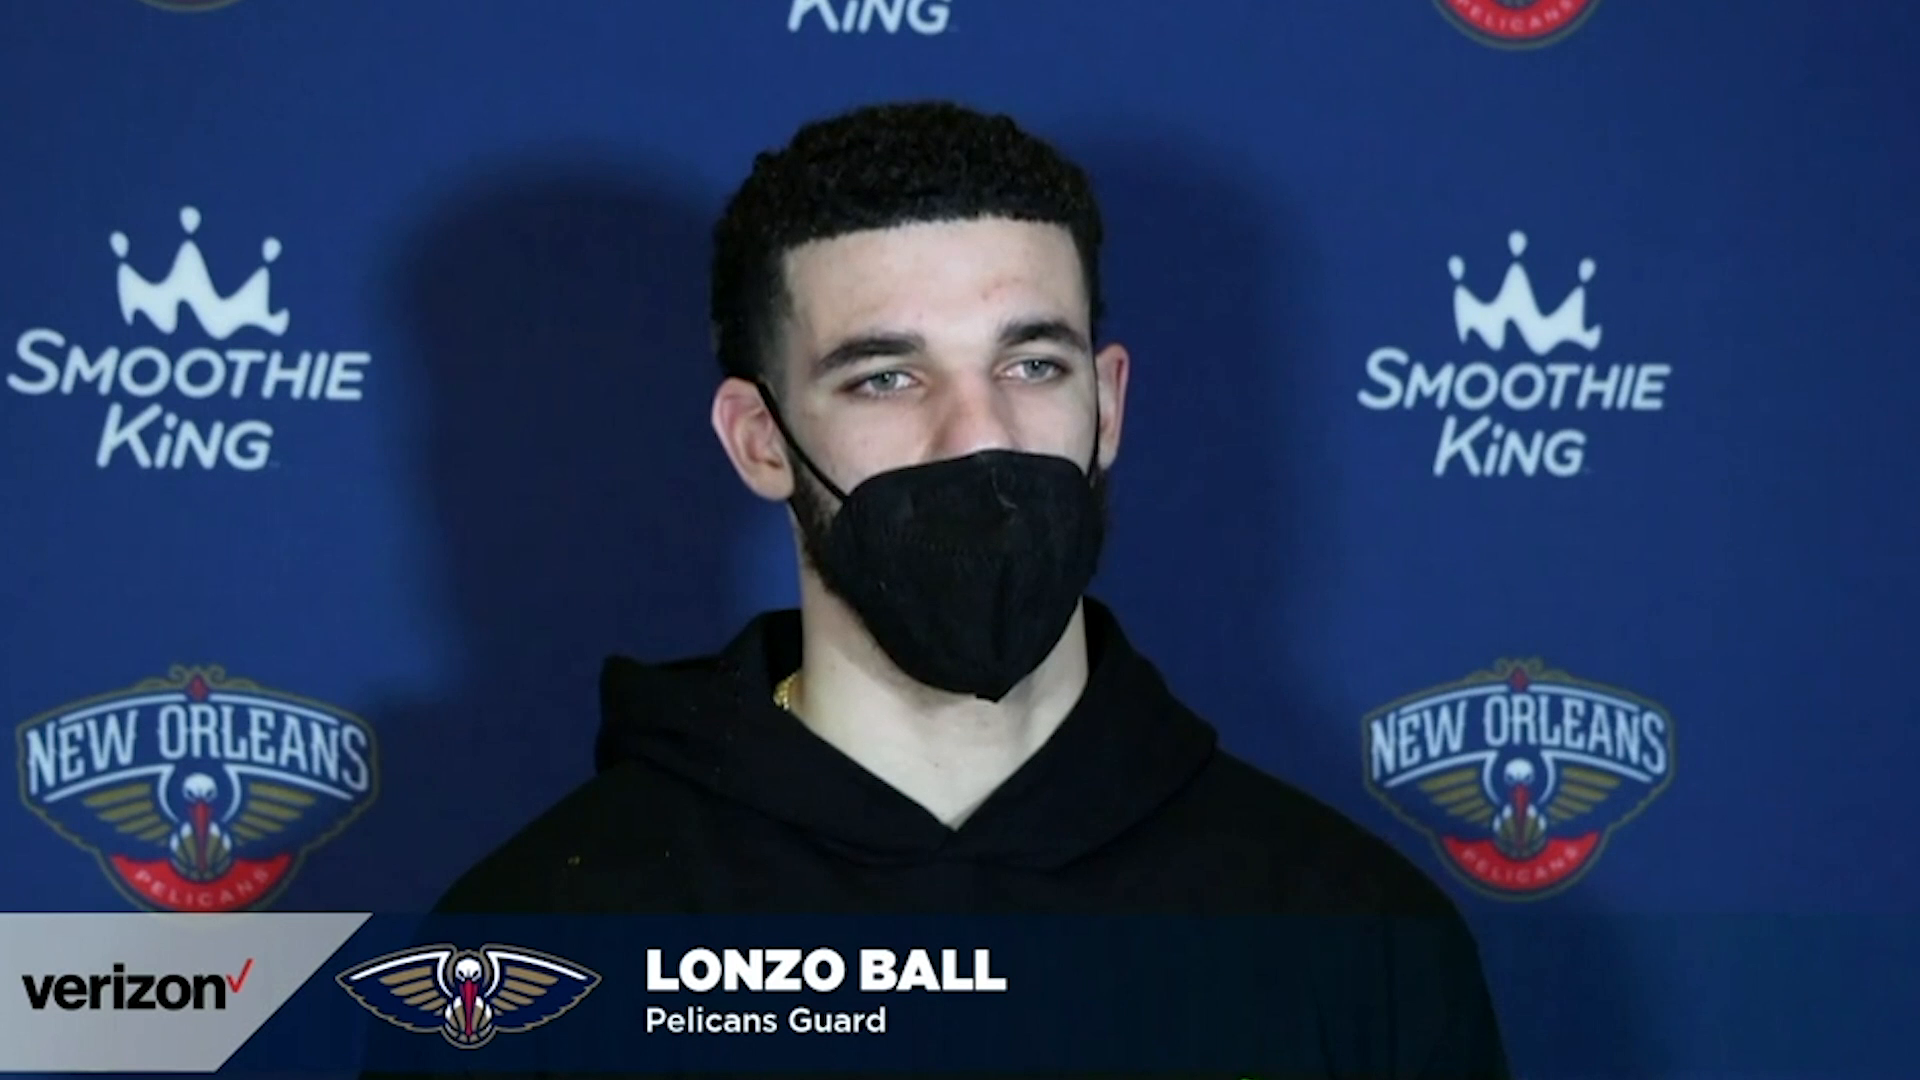 Pelicans-Grizzlies Postgame: Lonzo Ball 2-6-21